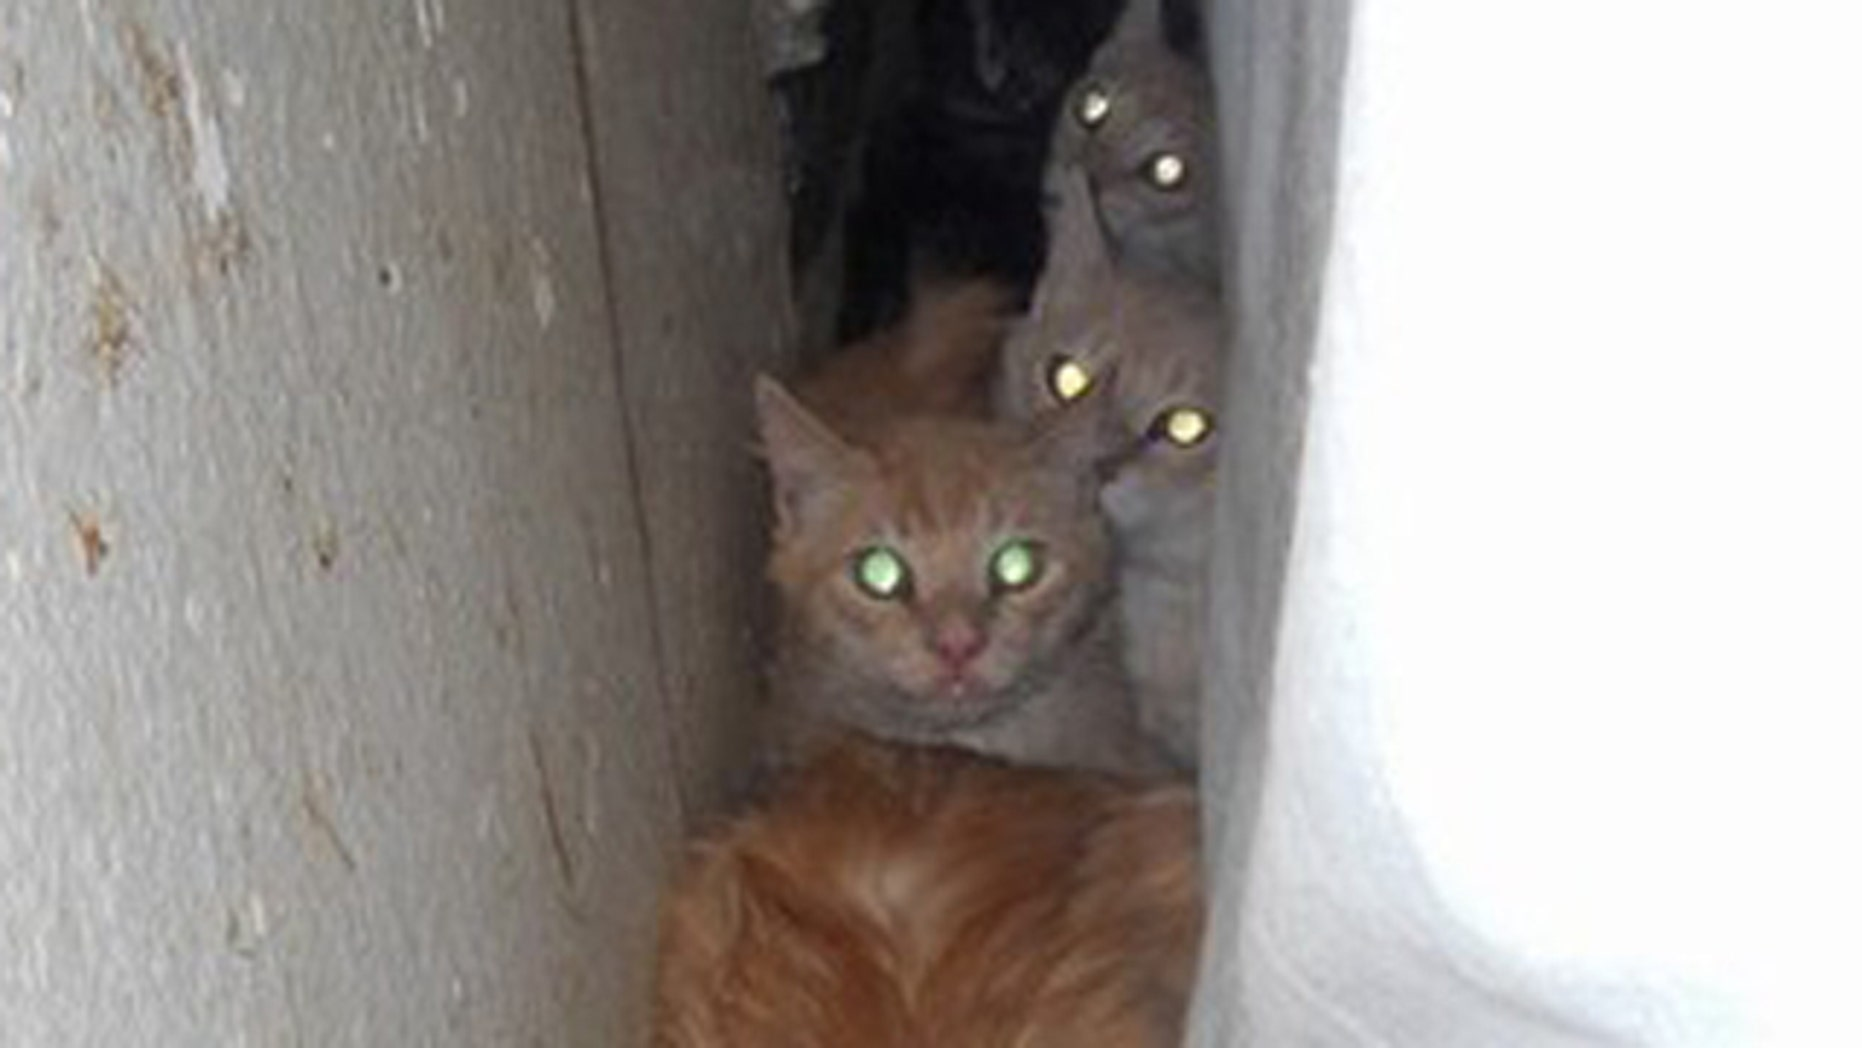 July 24, 2012: A number of cats found during a search and rescued from a home in Seaside, Calif.